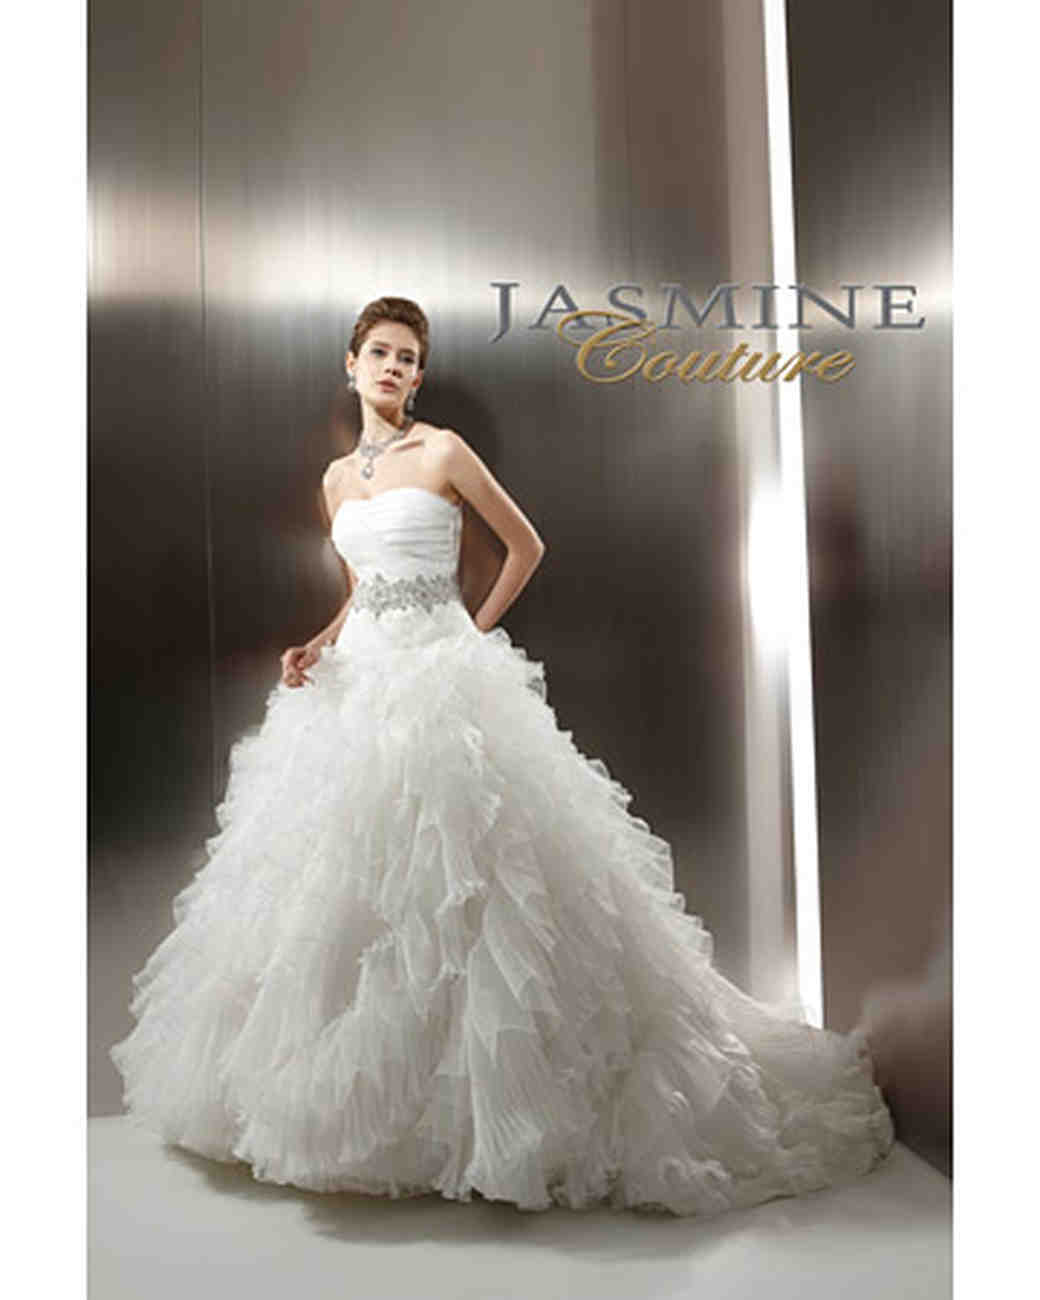 569b2f03fd3 Ball Gown. jasminebridal.com. Photography  Jasmine collection